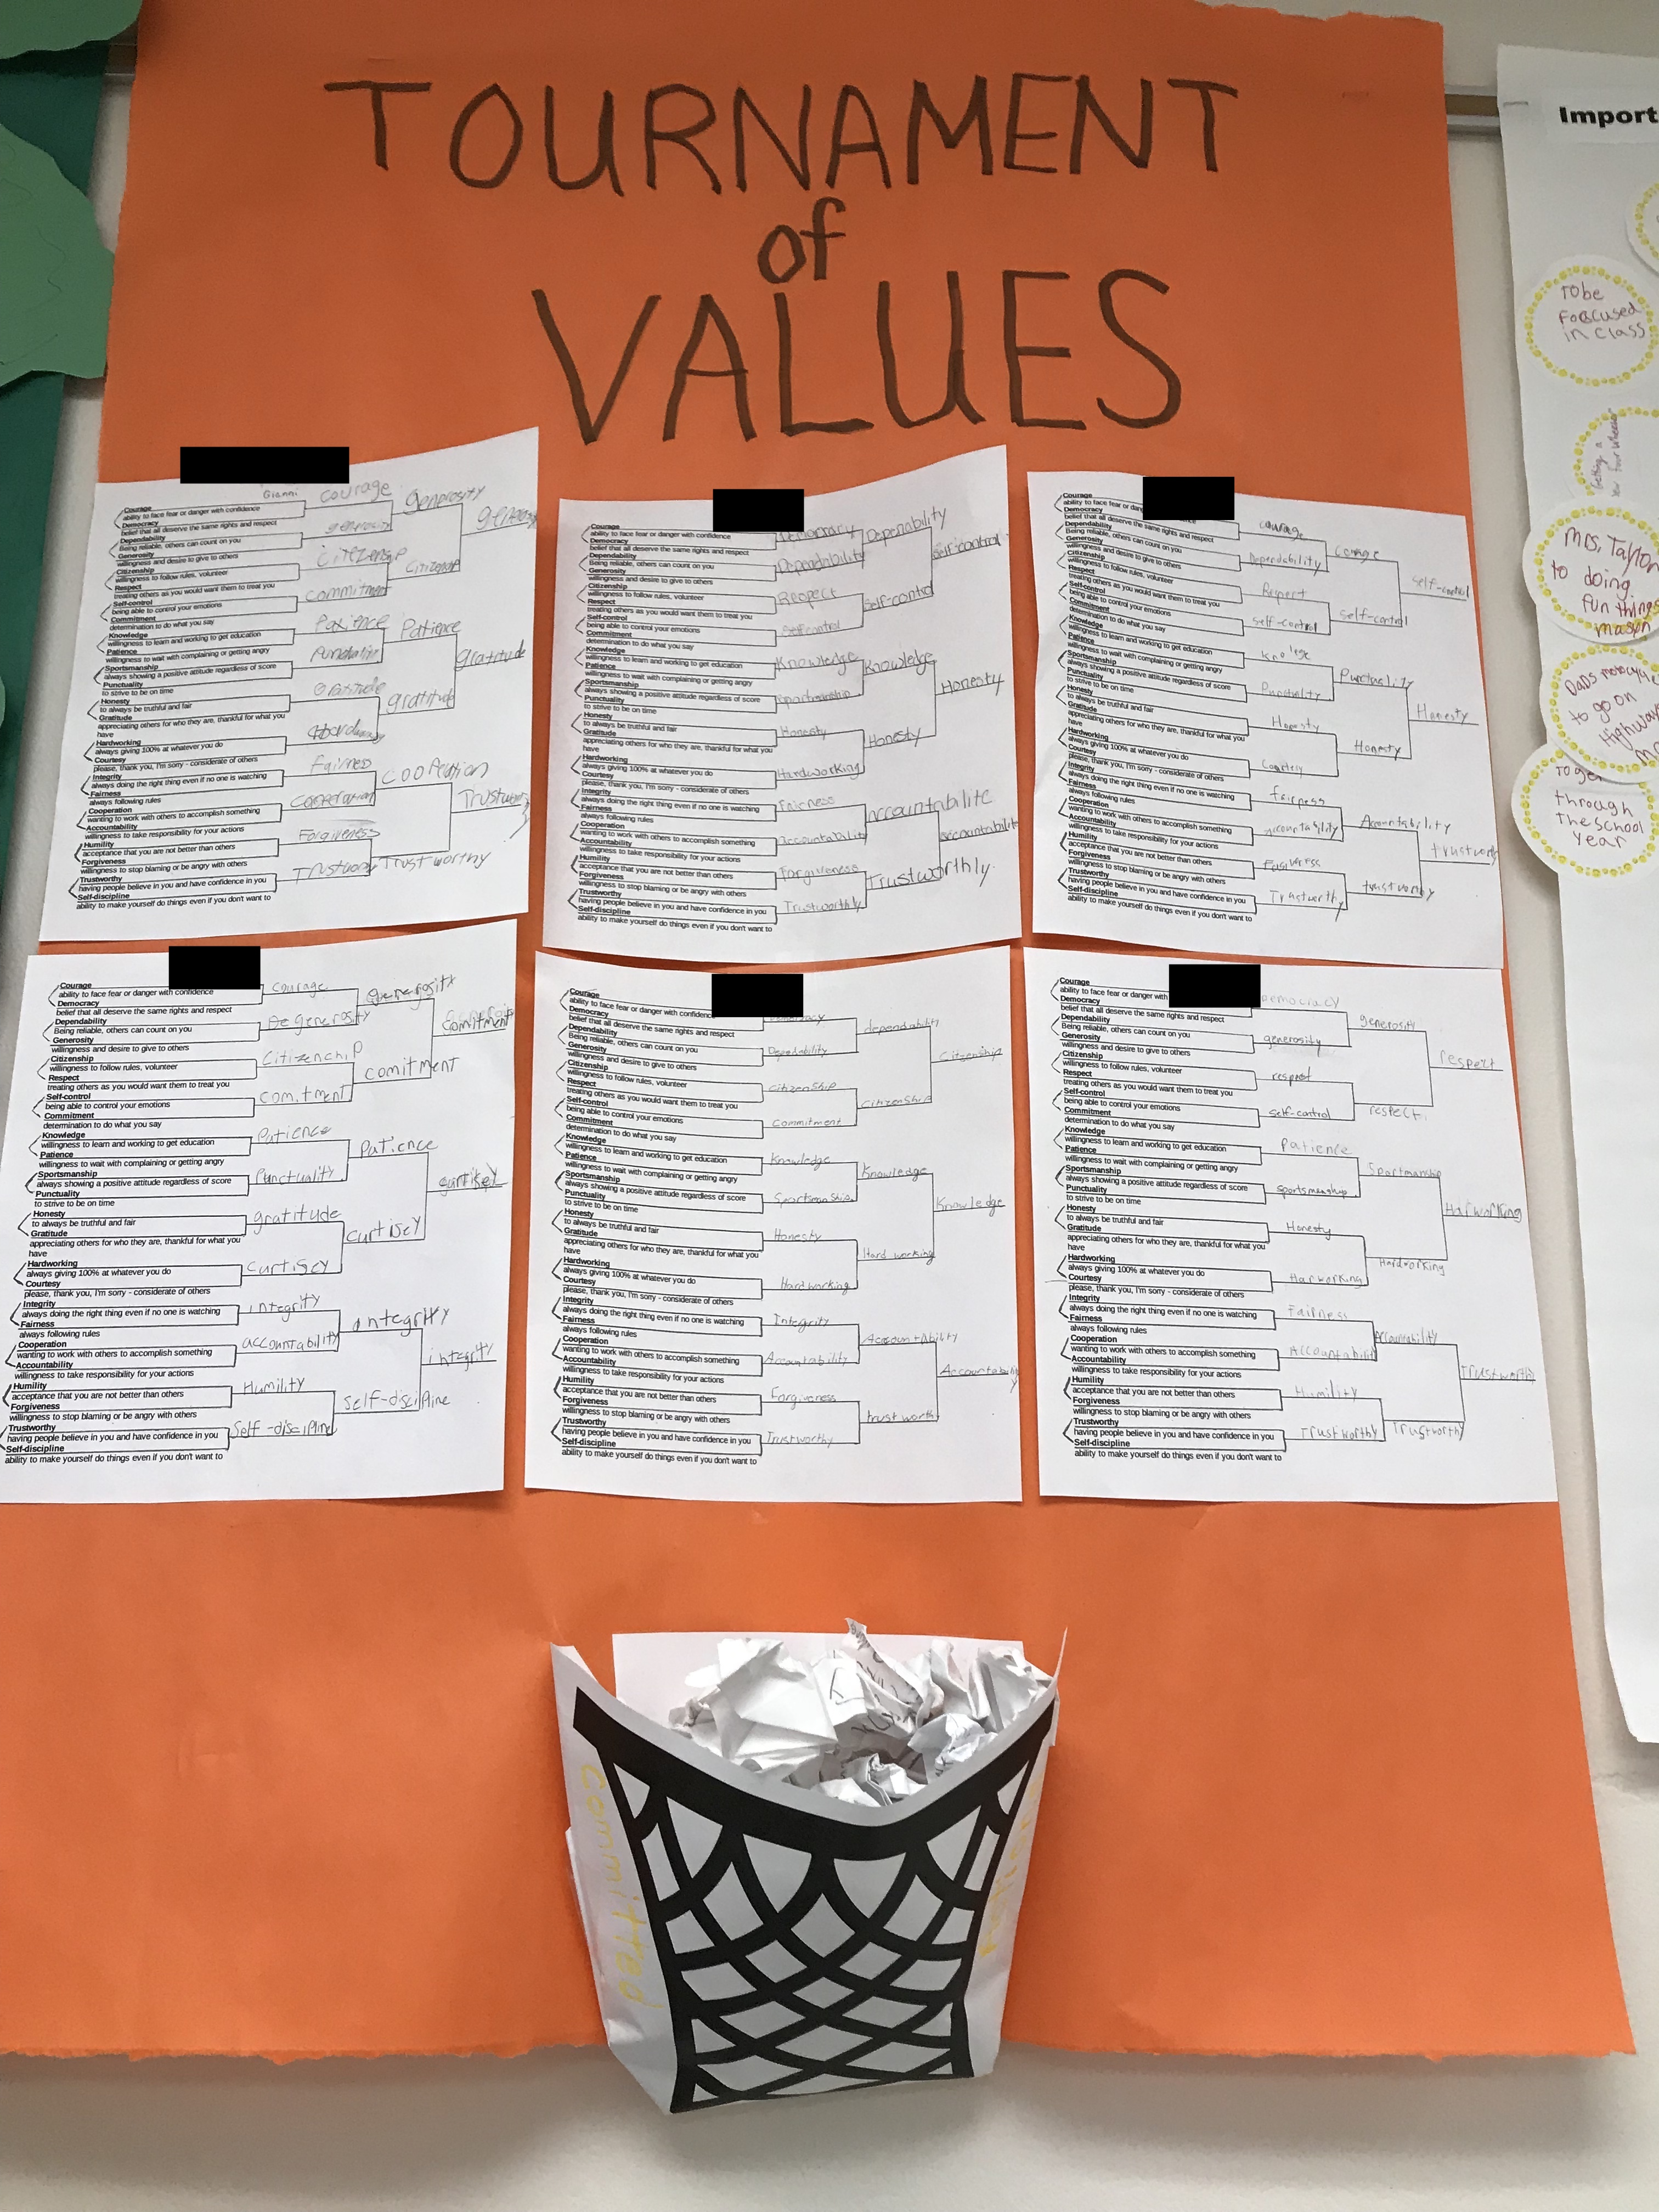 Day 81: Tournament of Values